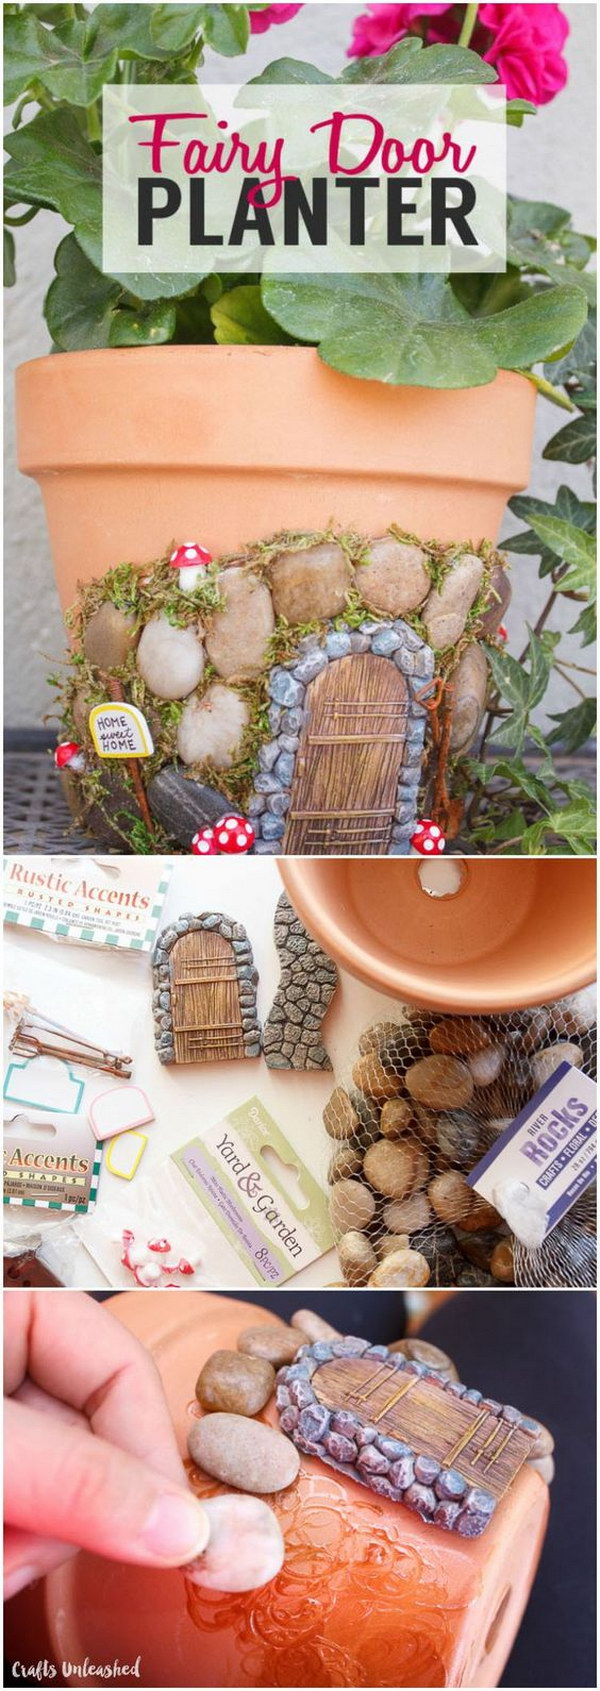 DIY Fairy House Planter.